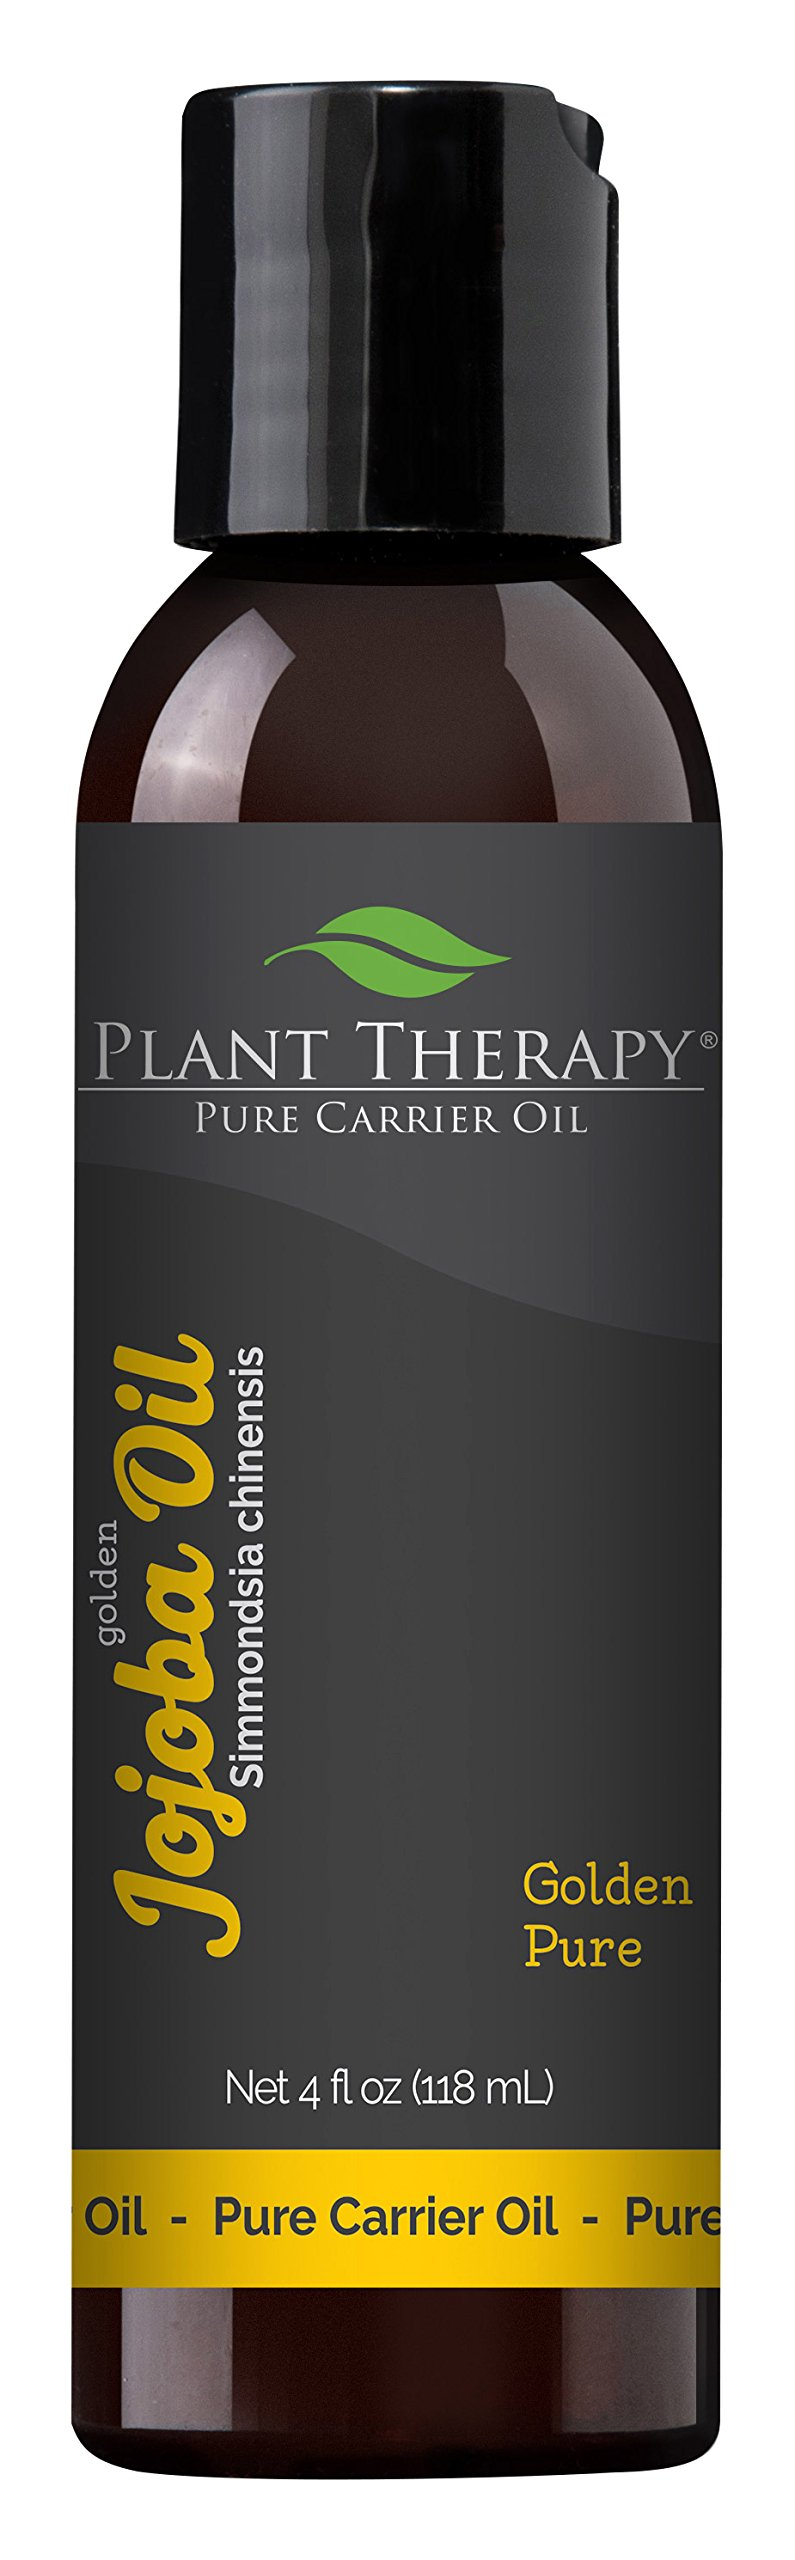 Plant Therapy Jojoba Oil. 100% Pure, Cold-Pressed, Natural and GMO-free Moisturizer and Carrier Oil for Essential Oils. 4 oz.